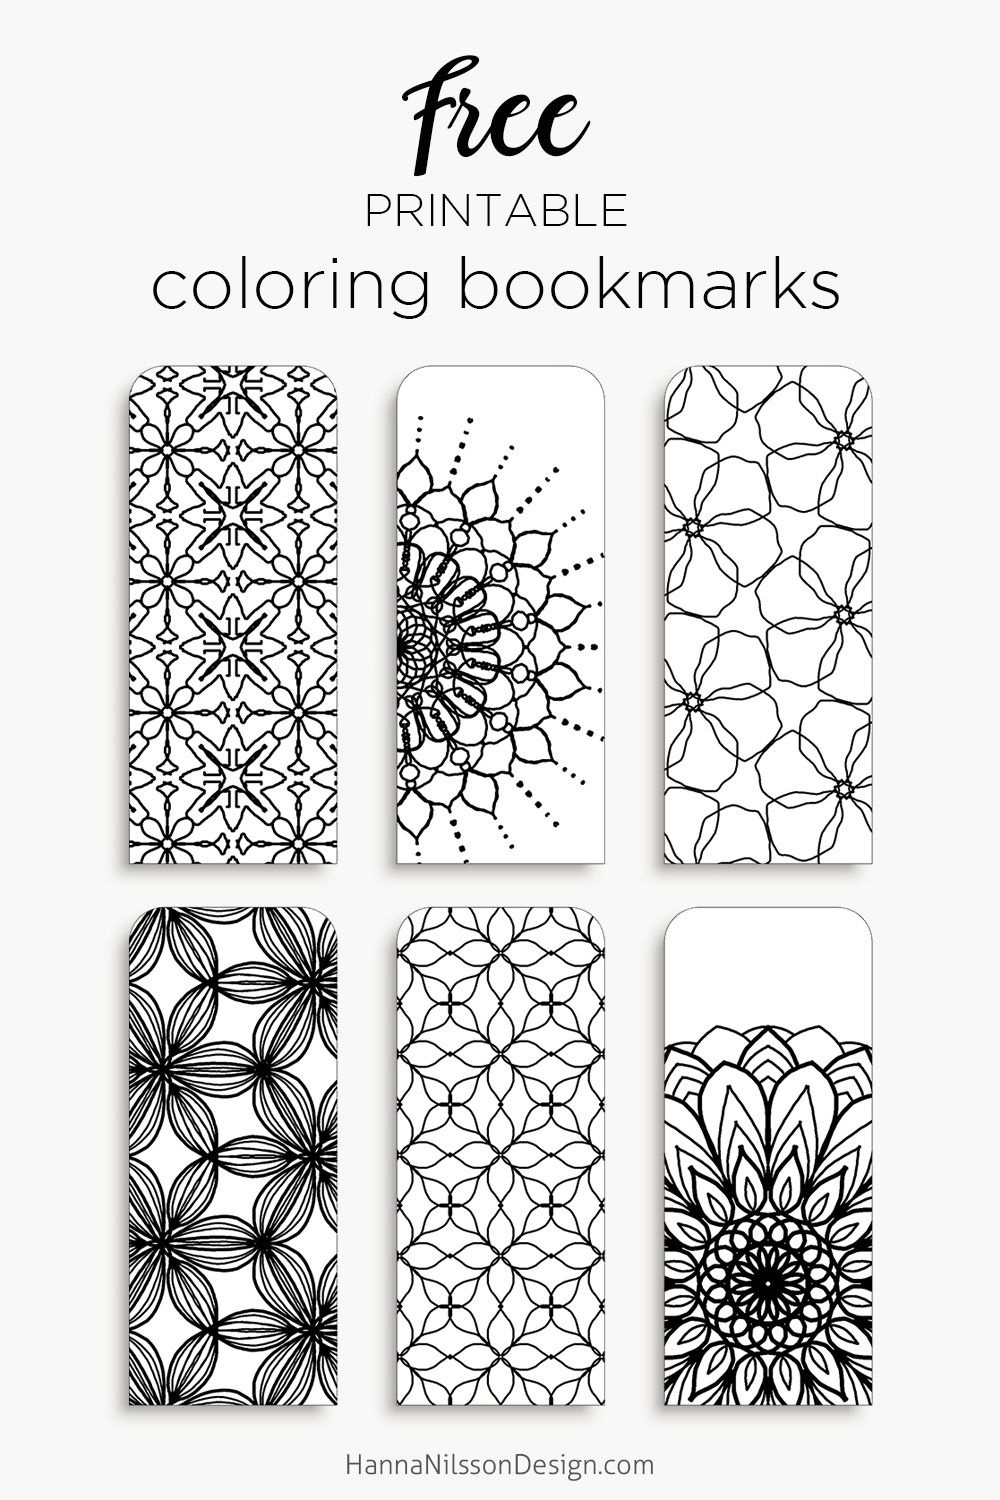 Coloring Bookmarks – Print, Color And Read | Bookmarks | Free - Free Printable Bookmarks To Color